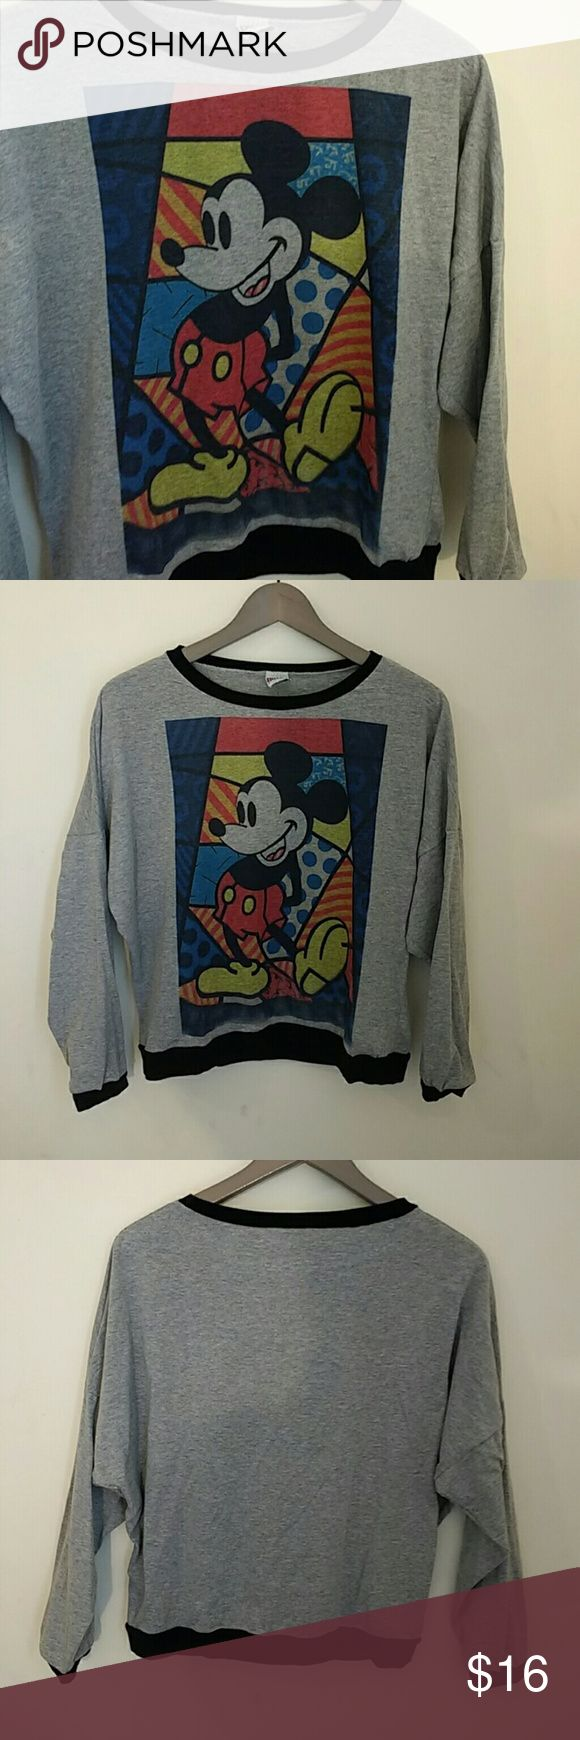 "Mickey Mouse Top Grey/black/blue/red/yellow Mickey Mouse printed top. Batwing sleeves. Fits loosely. No size, but fits like small.   Brand: Bovy  Length: 21"" Bust: 24"" Tops Tees - Long Sleeve"